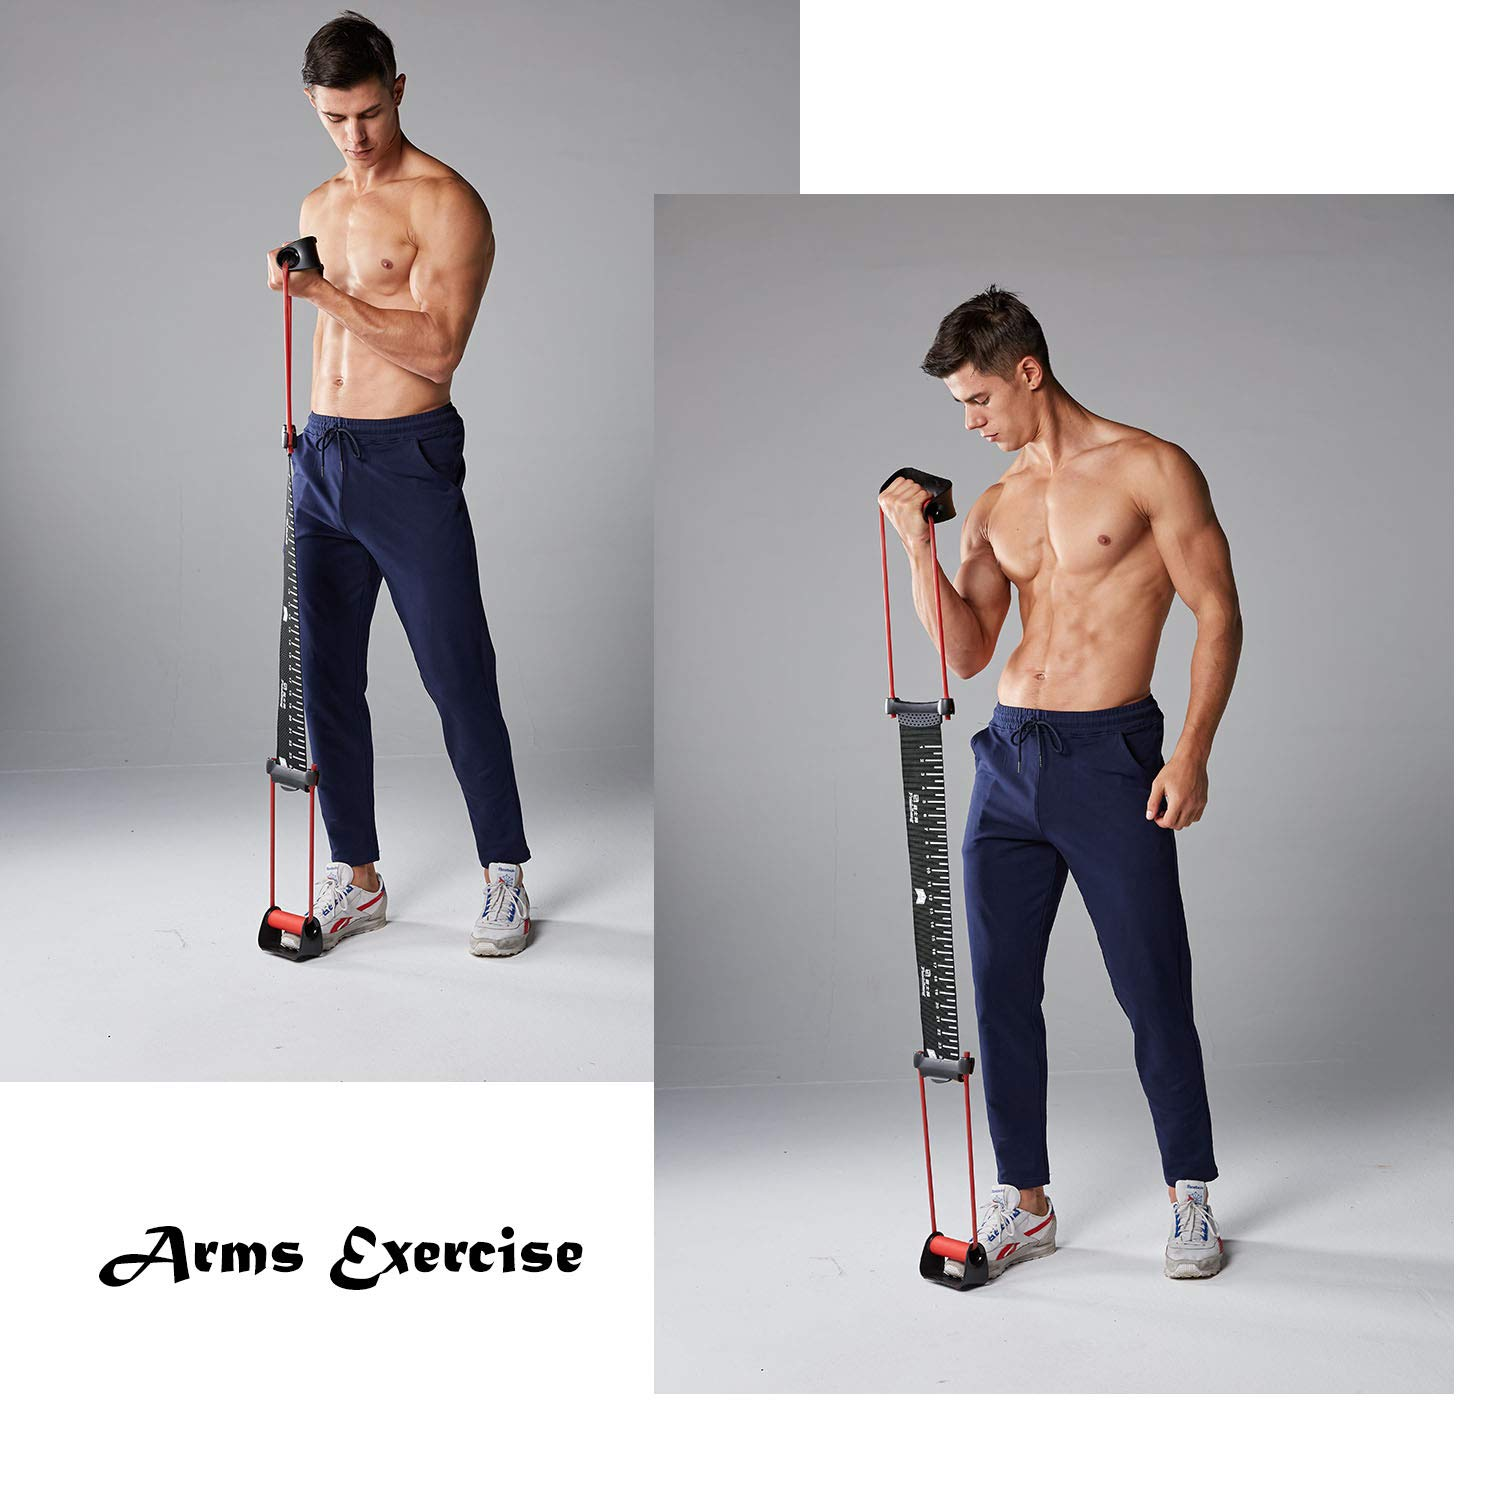 Shoulder Back and arm Muscles with Push-ups MetaBall Push up Stand Bar Resistance Band Power Push up Plus 24 Resistance Levels for Chest Flies All in one Exercise Home Gym